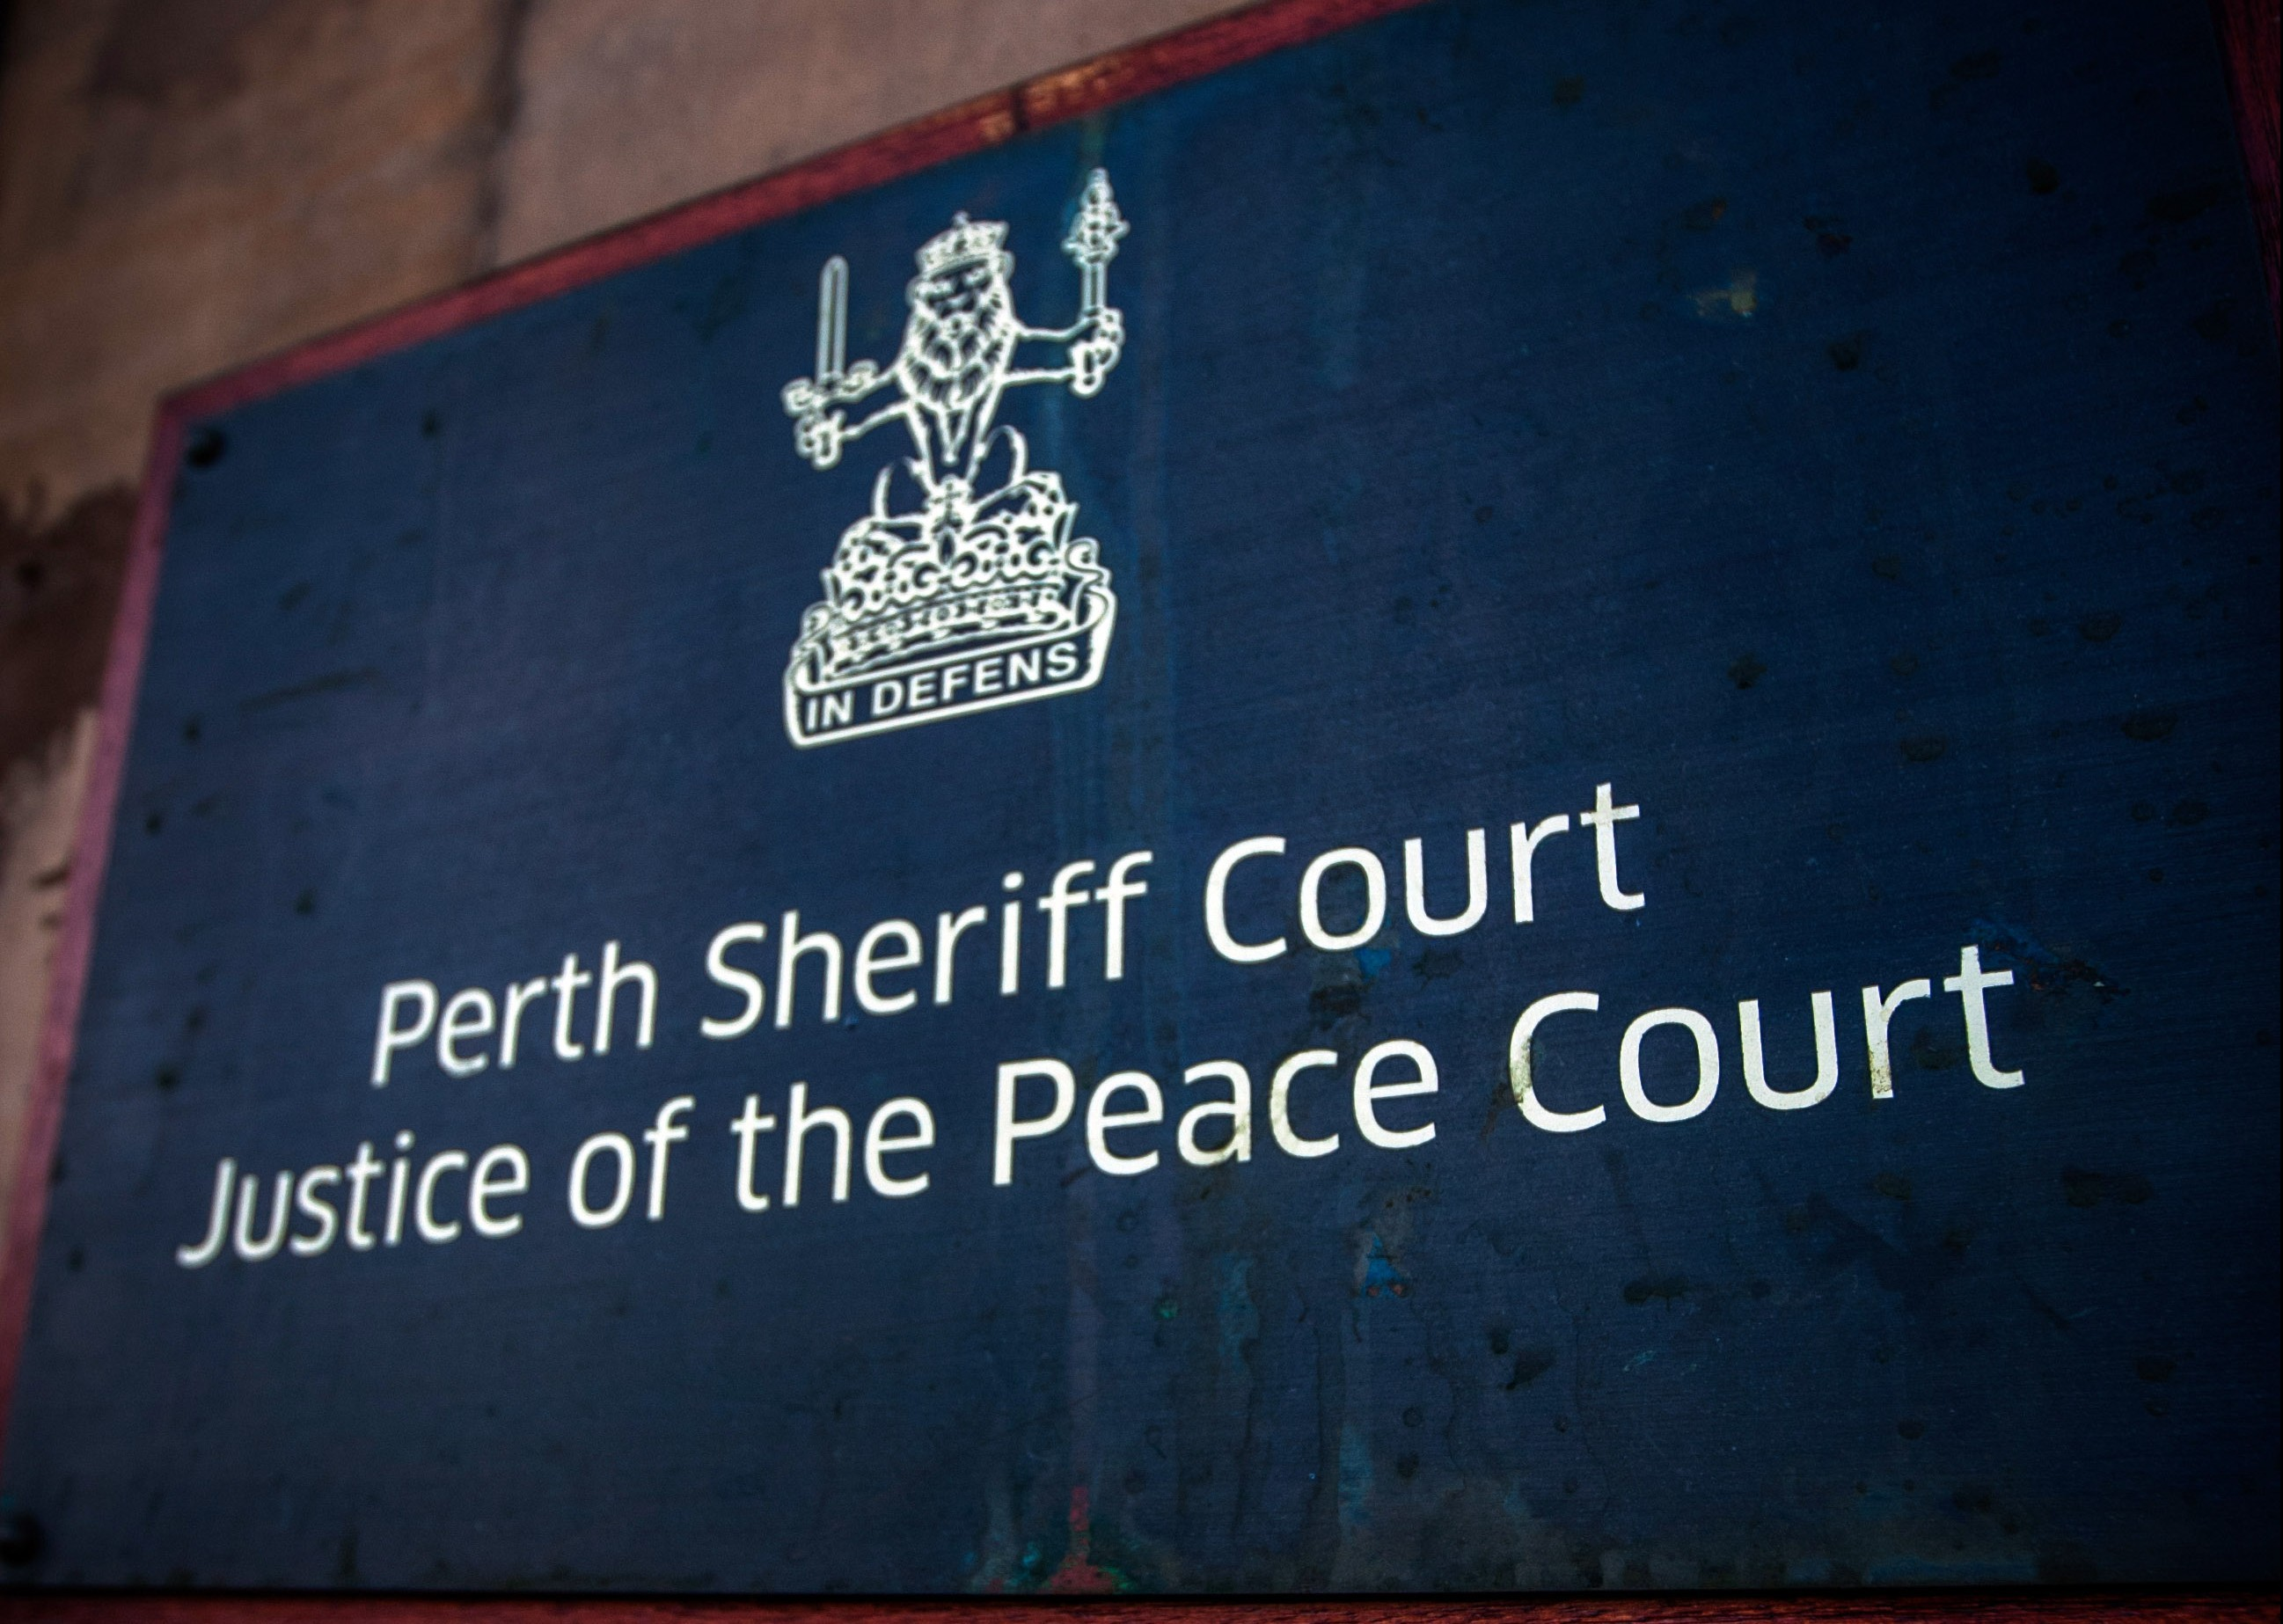 Florin Ciovica was photographed by a member of staff getting behind the wheel after leaving the Perth Sheriff Court car park.